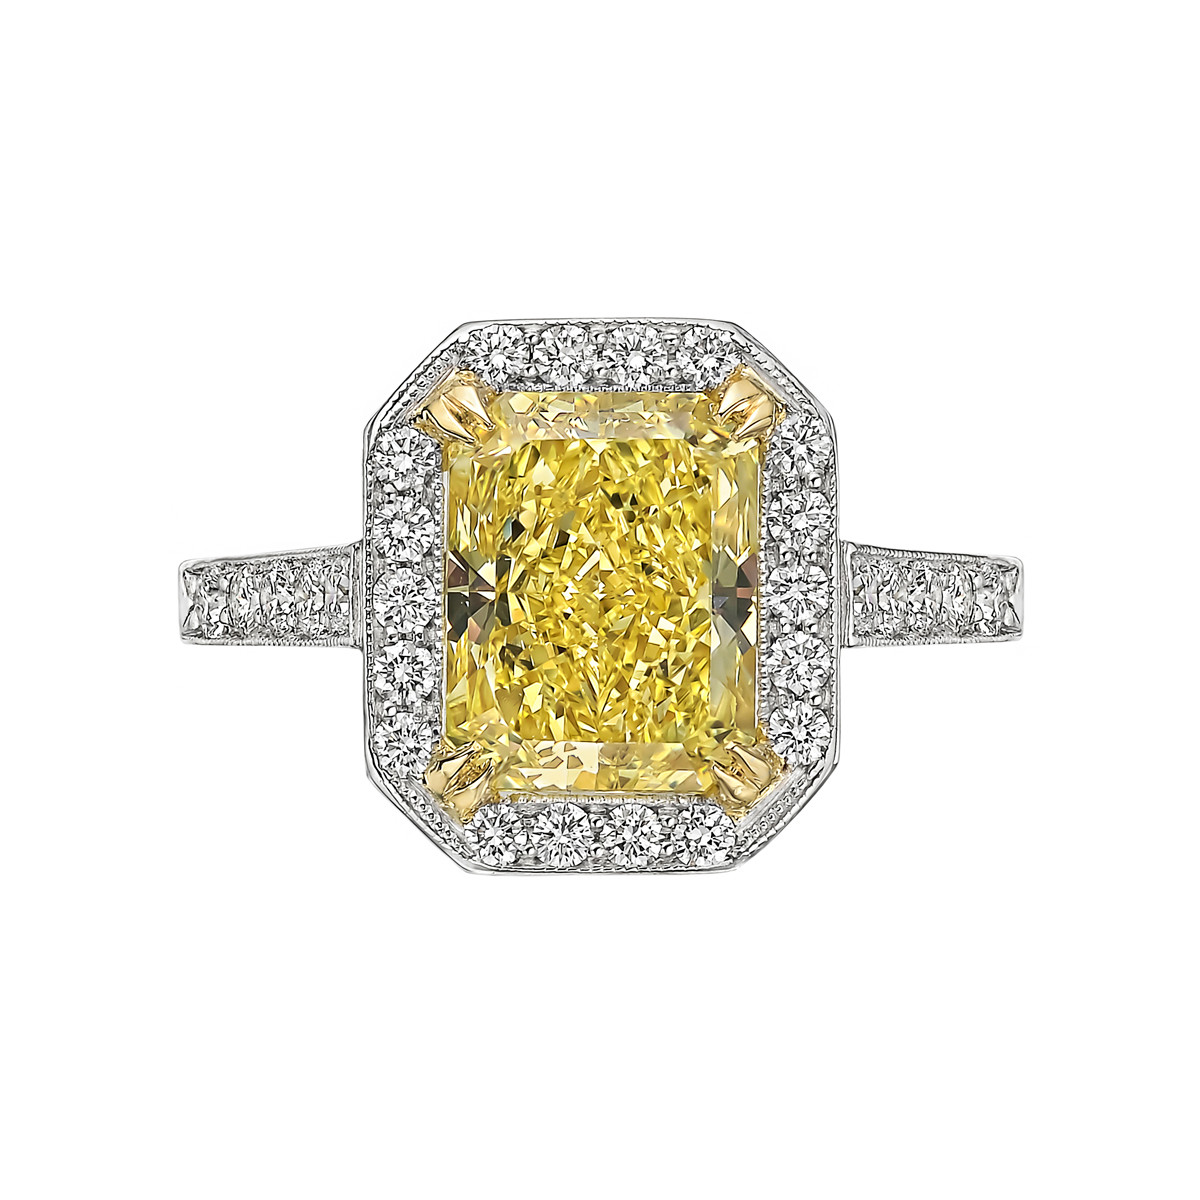 3.21ct Fancy Intense Yellow Diamond Ring